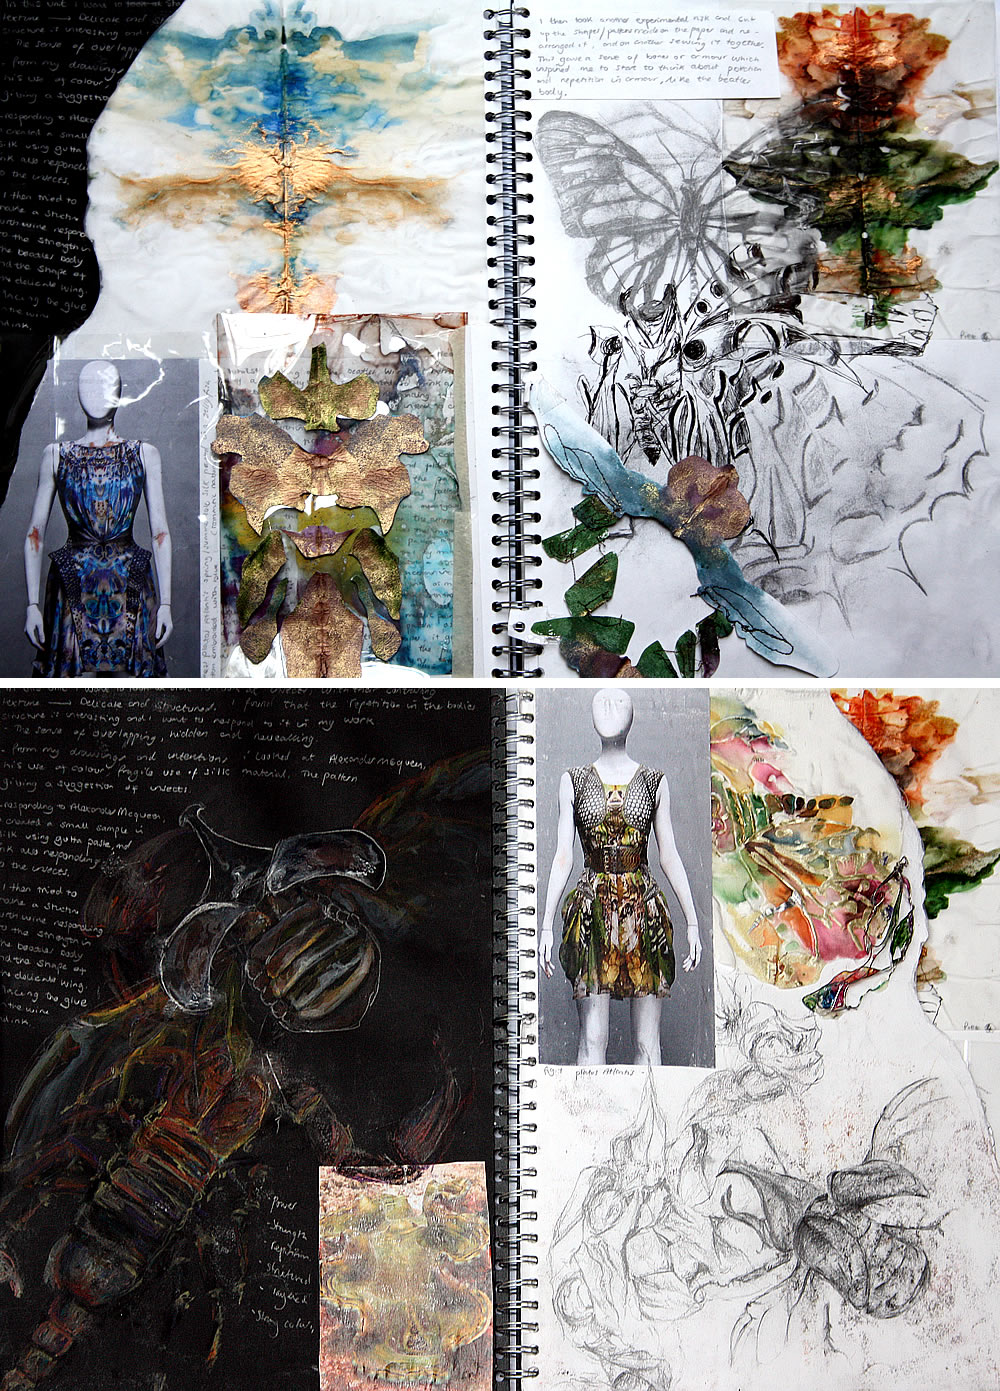 Insect fashion design project